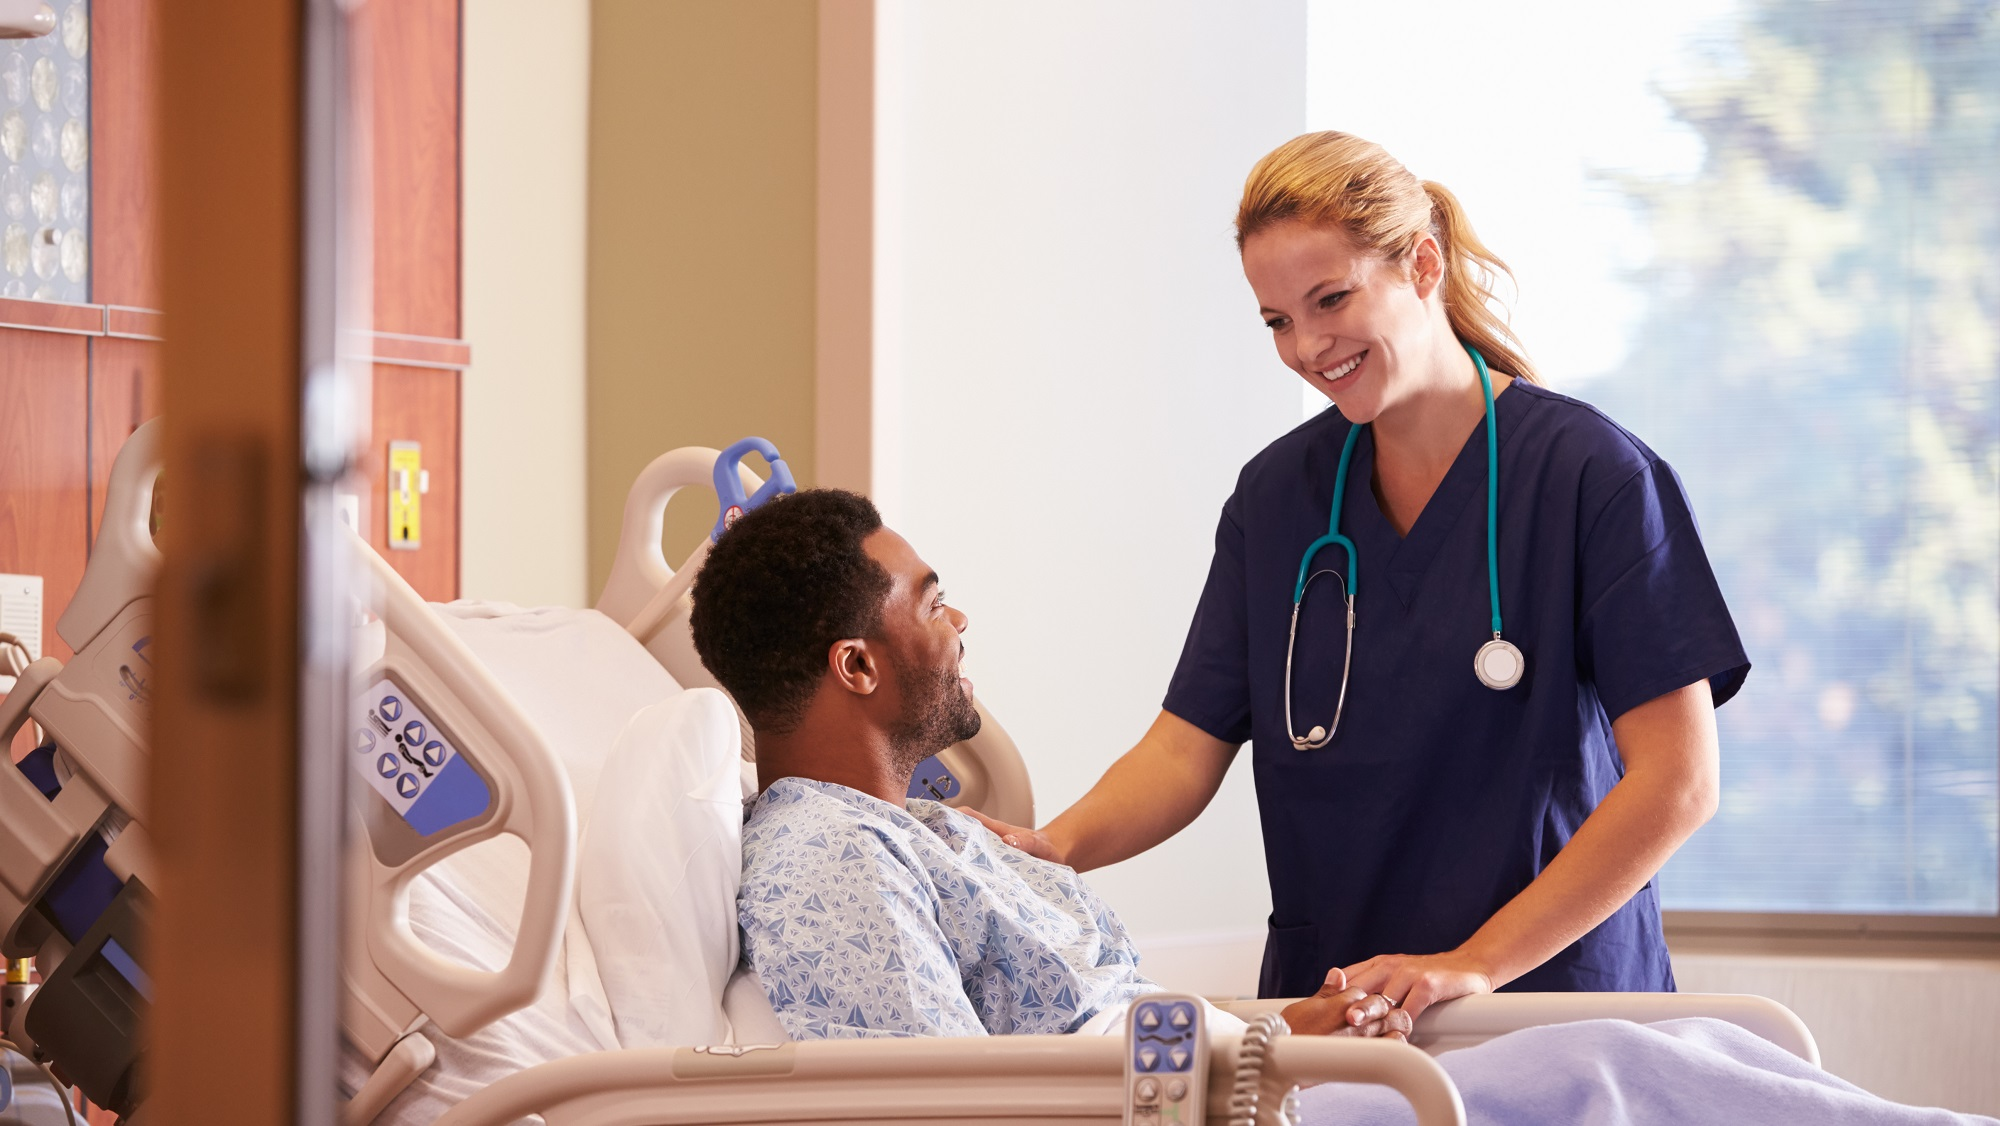 Capacity management and patient throughput patient-centred